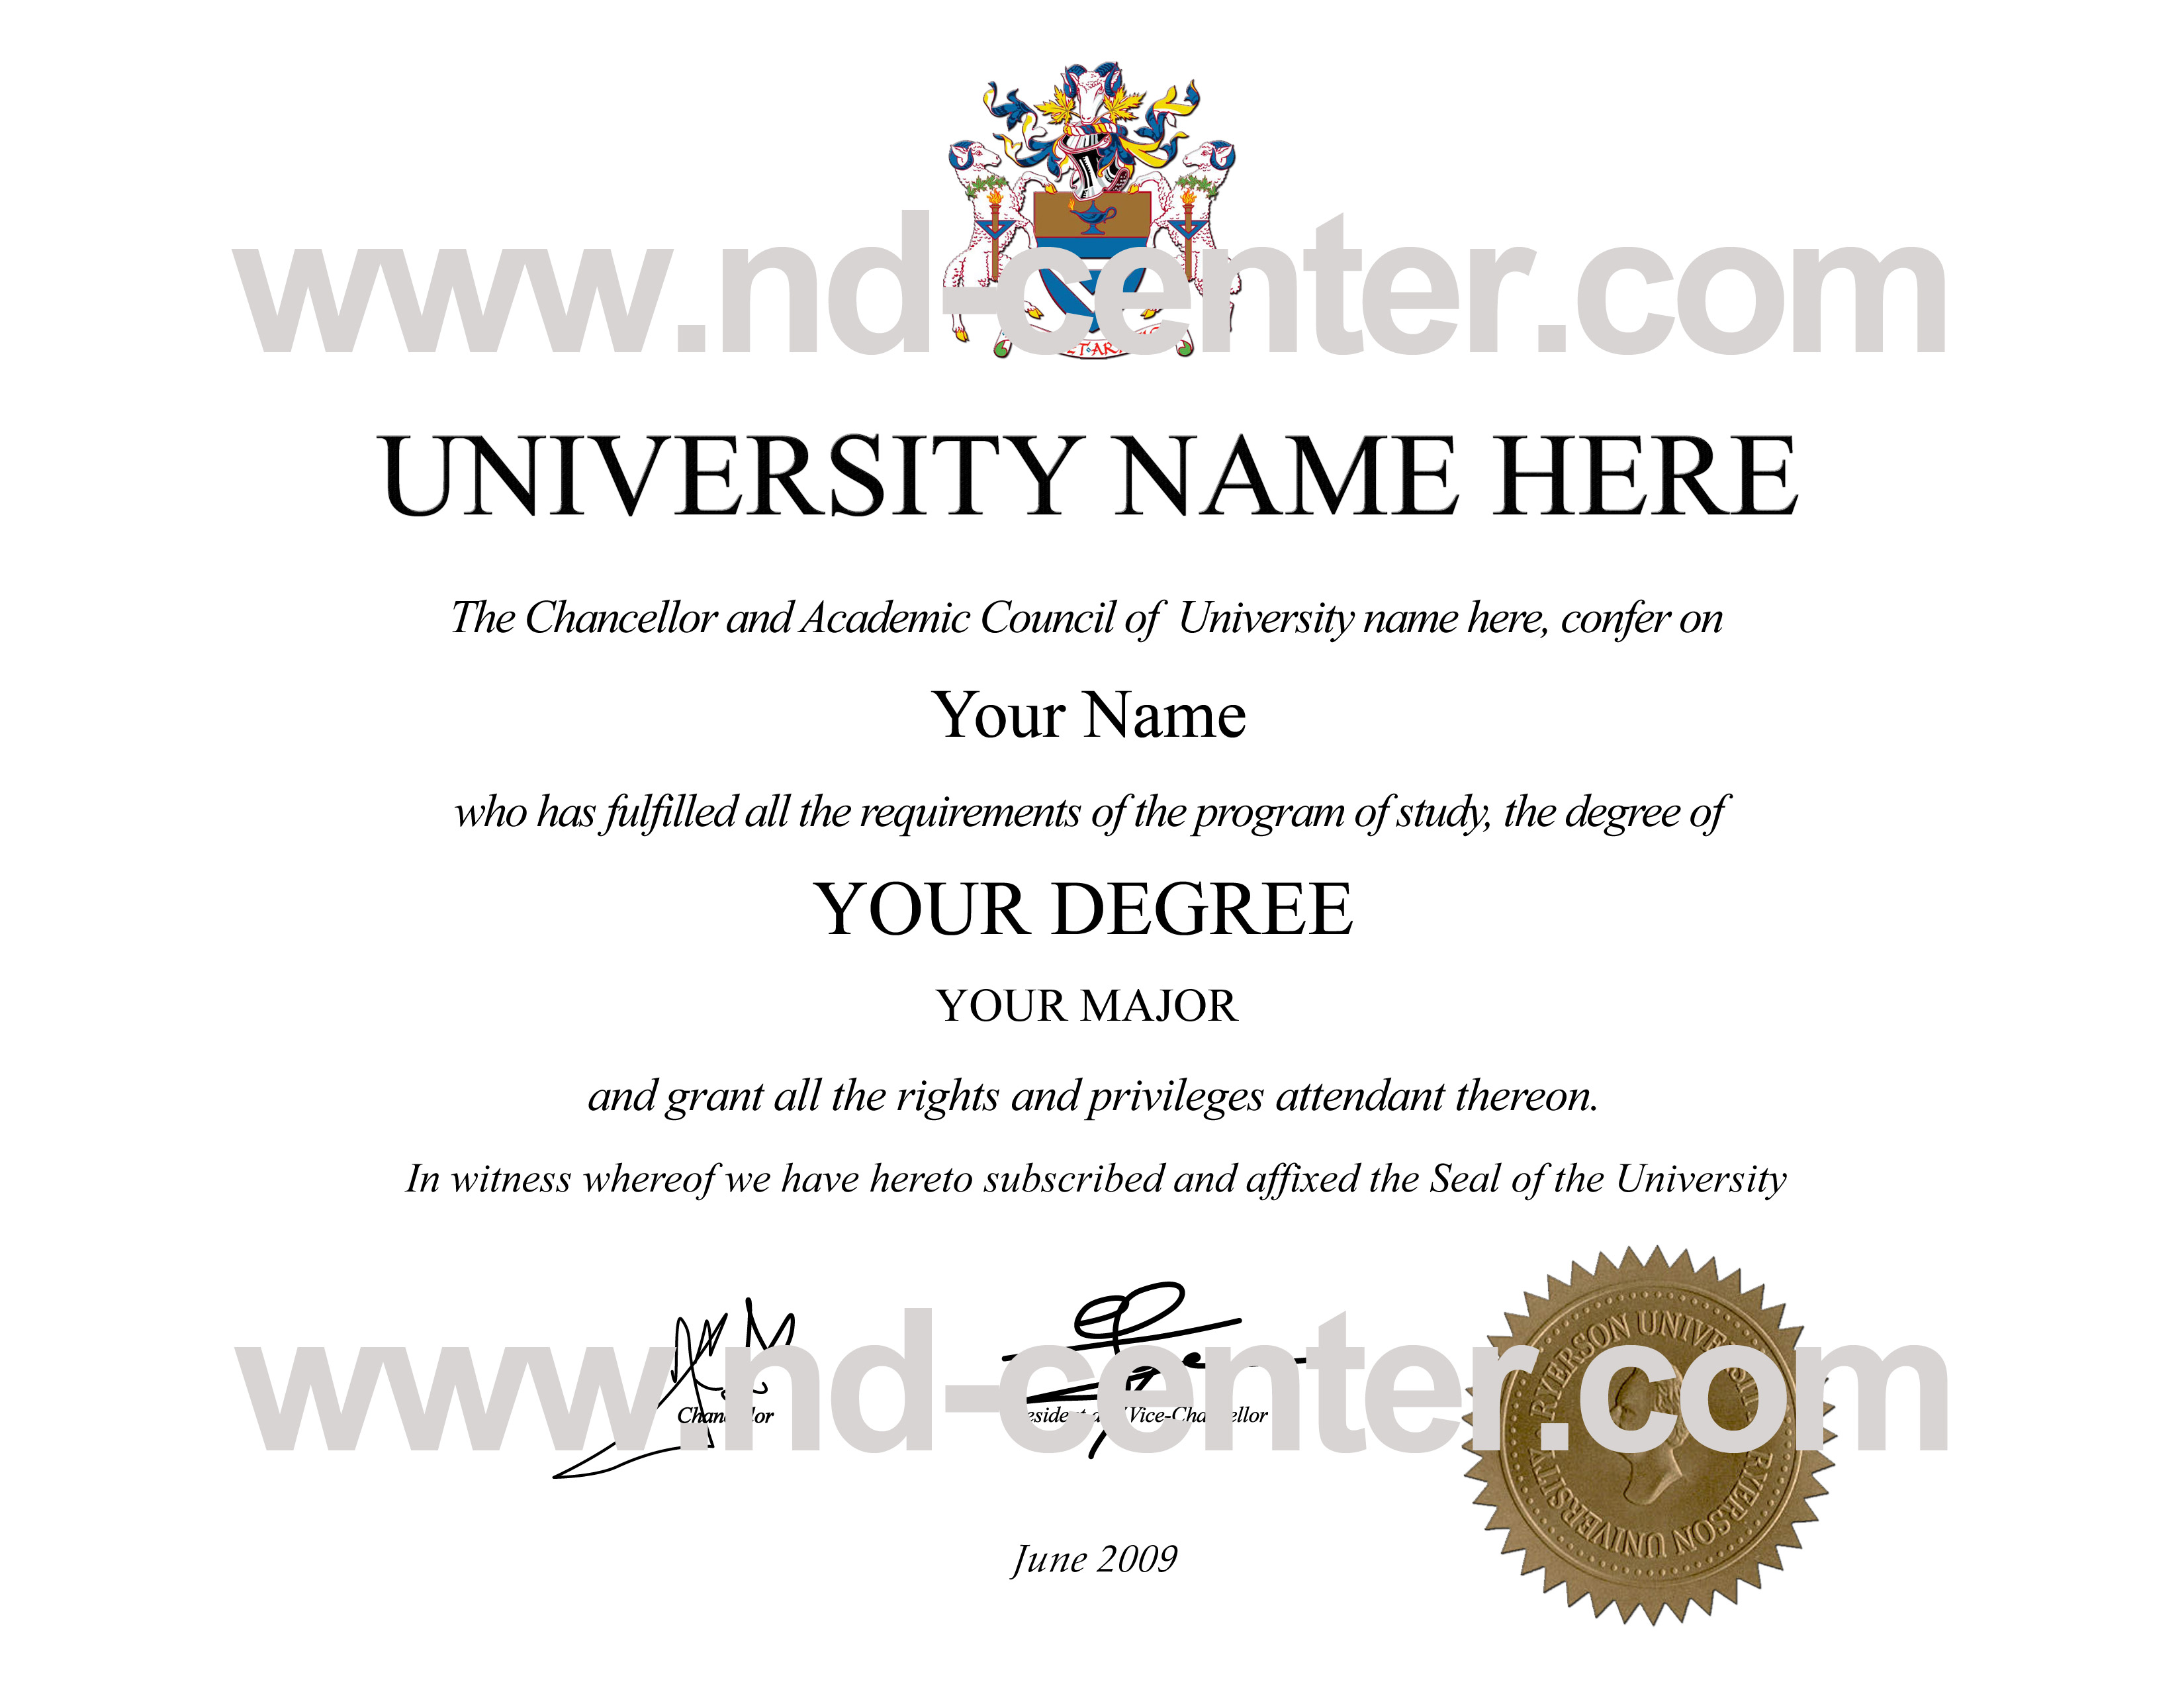 Superior Quality Fake Diplomas, Fake Degrees, Fake Certificates